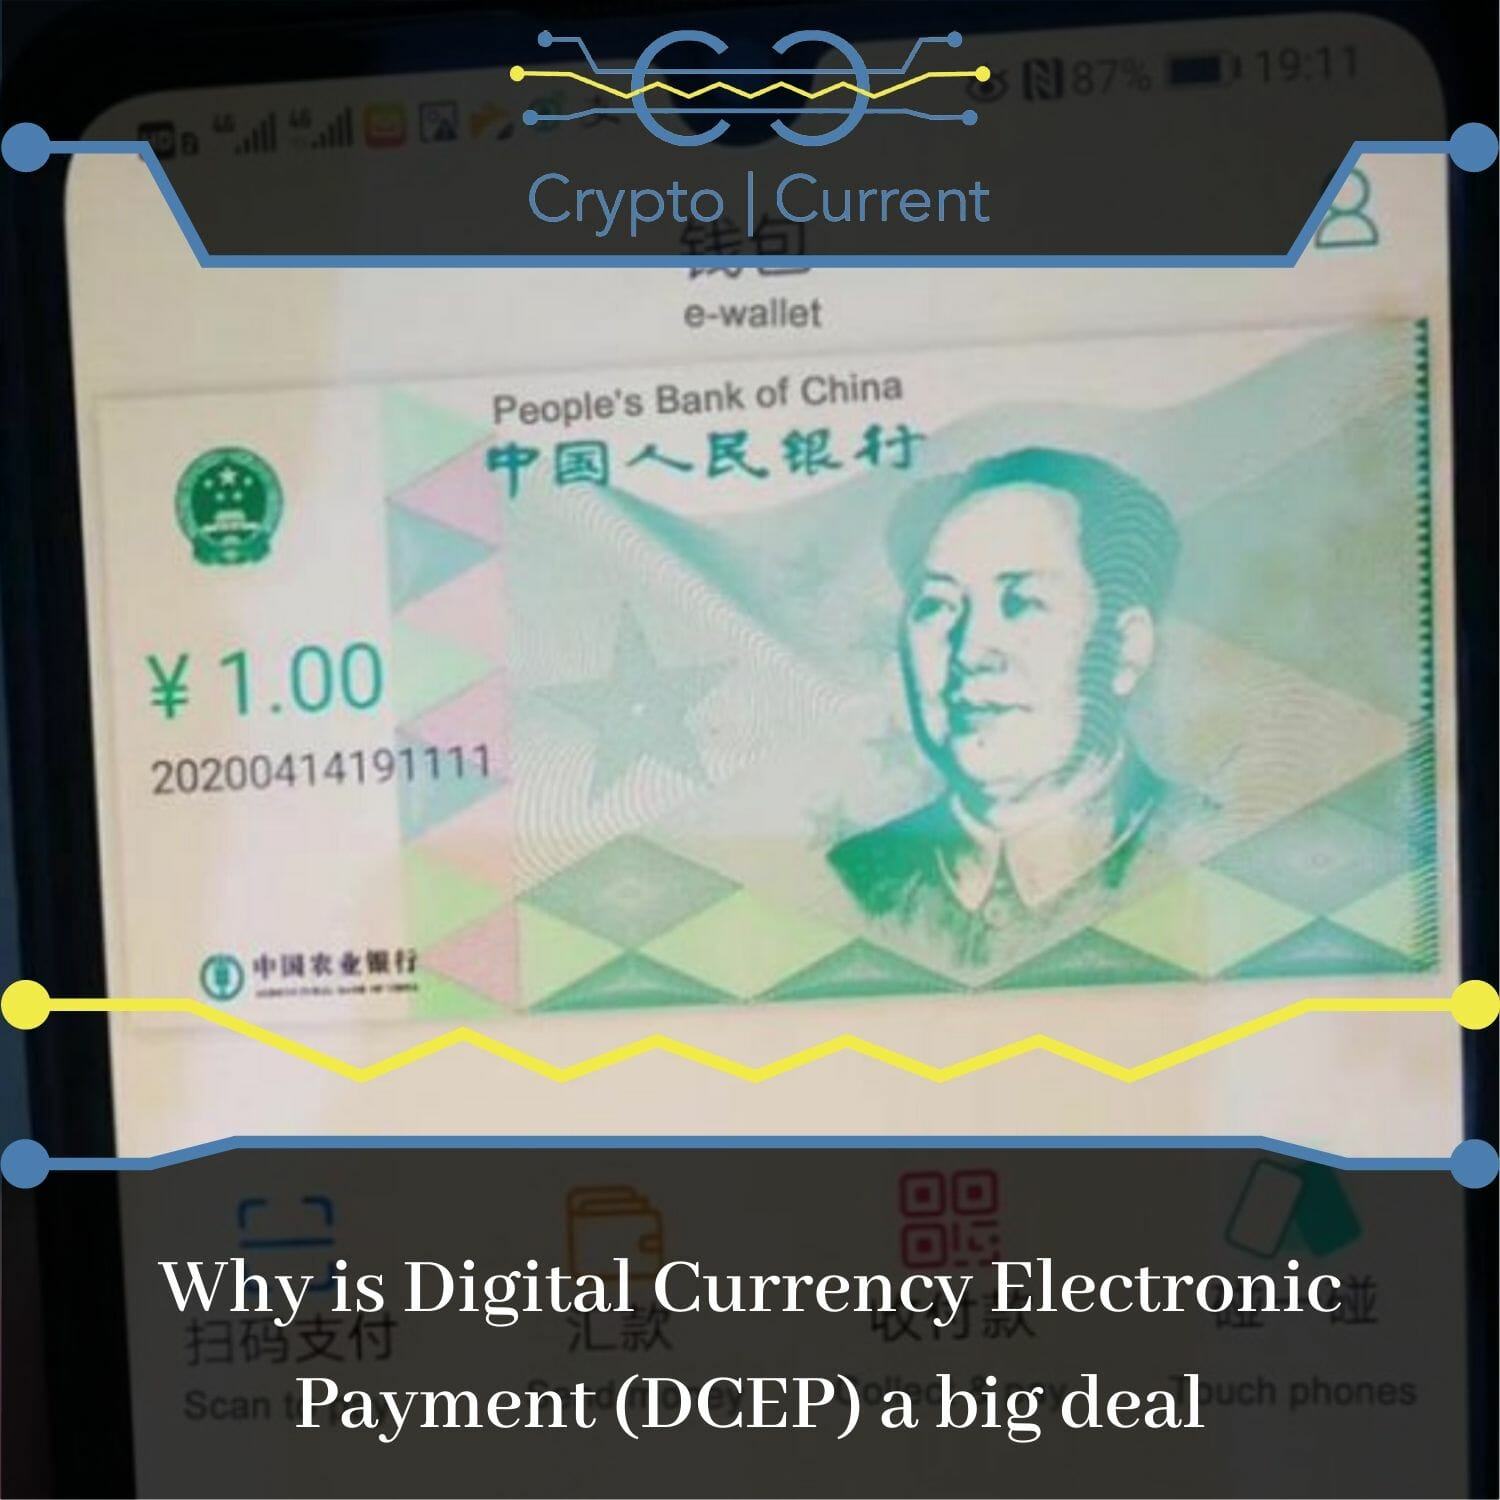 Why is Digital Currency Electronic Payment (DCEP) a big deal